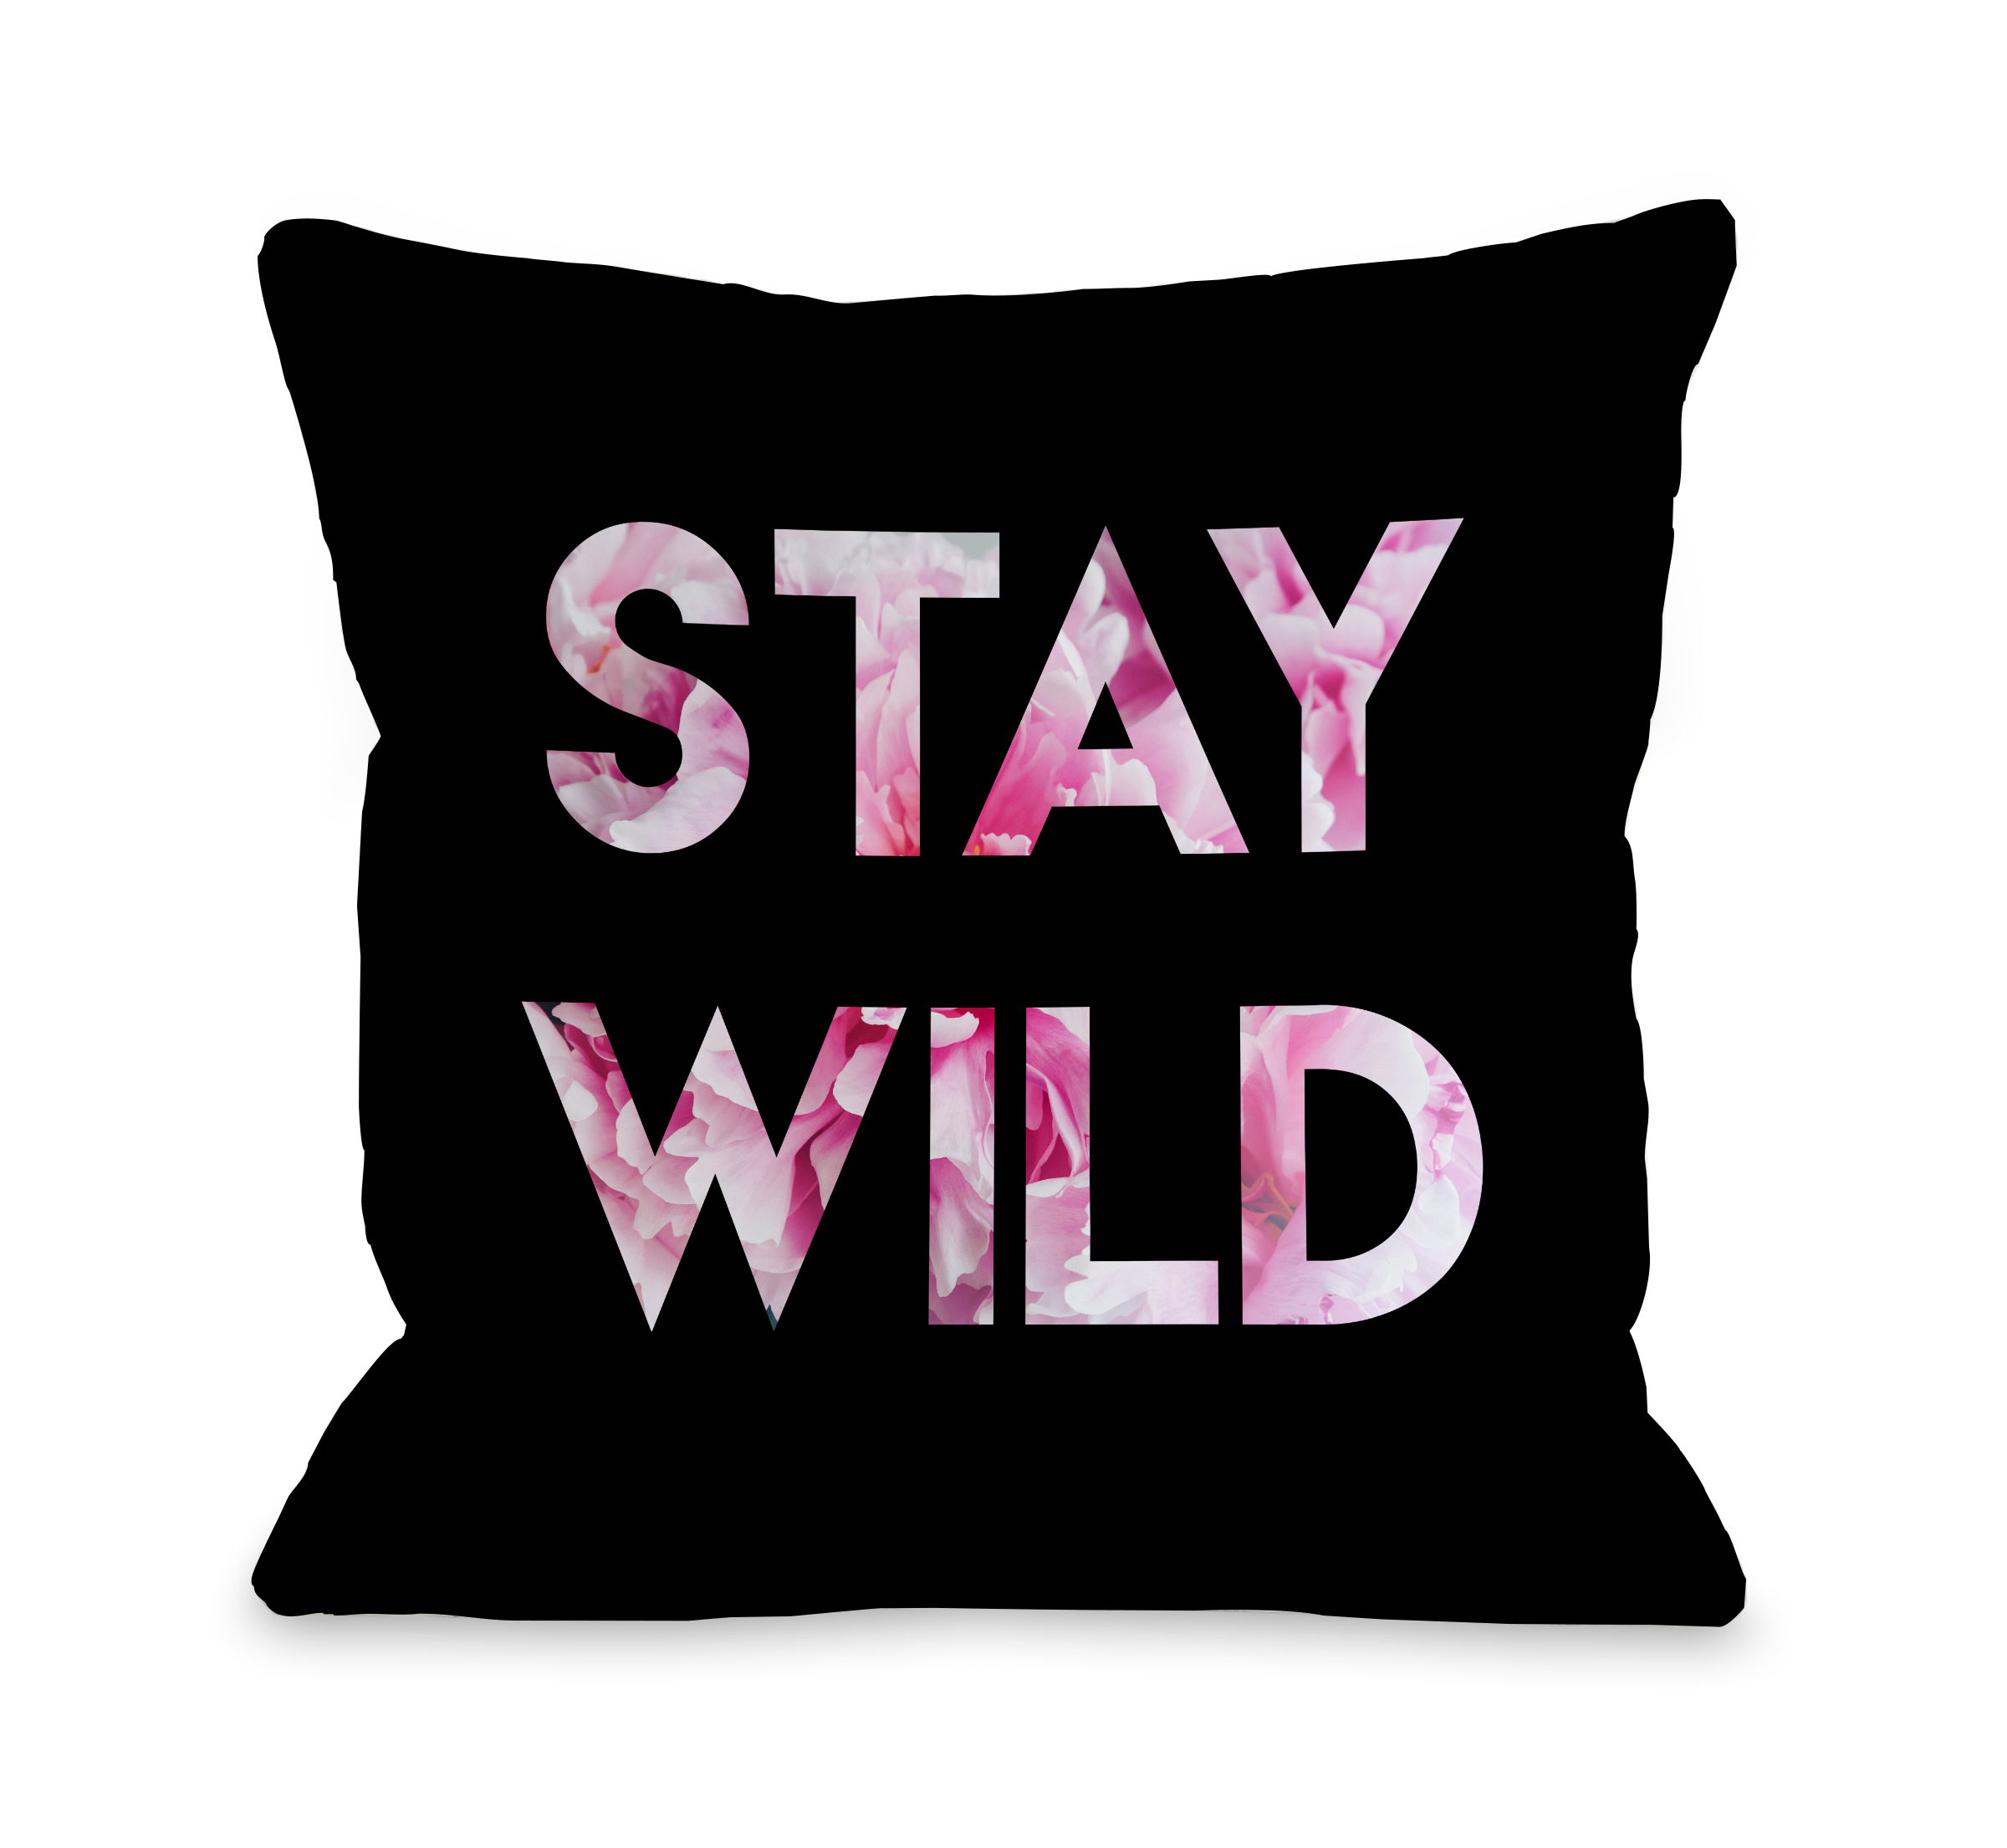 Stay Wild - Black 18x18 Pillow by OBC